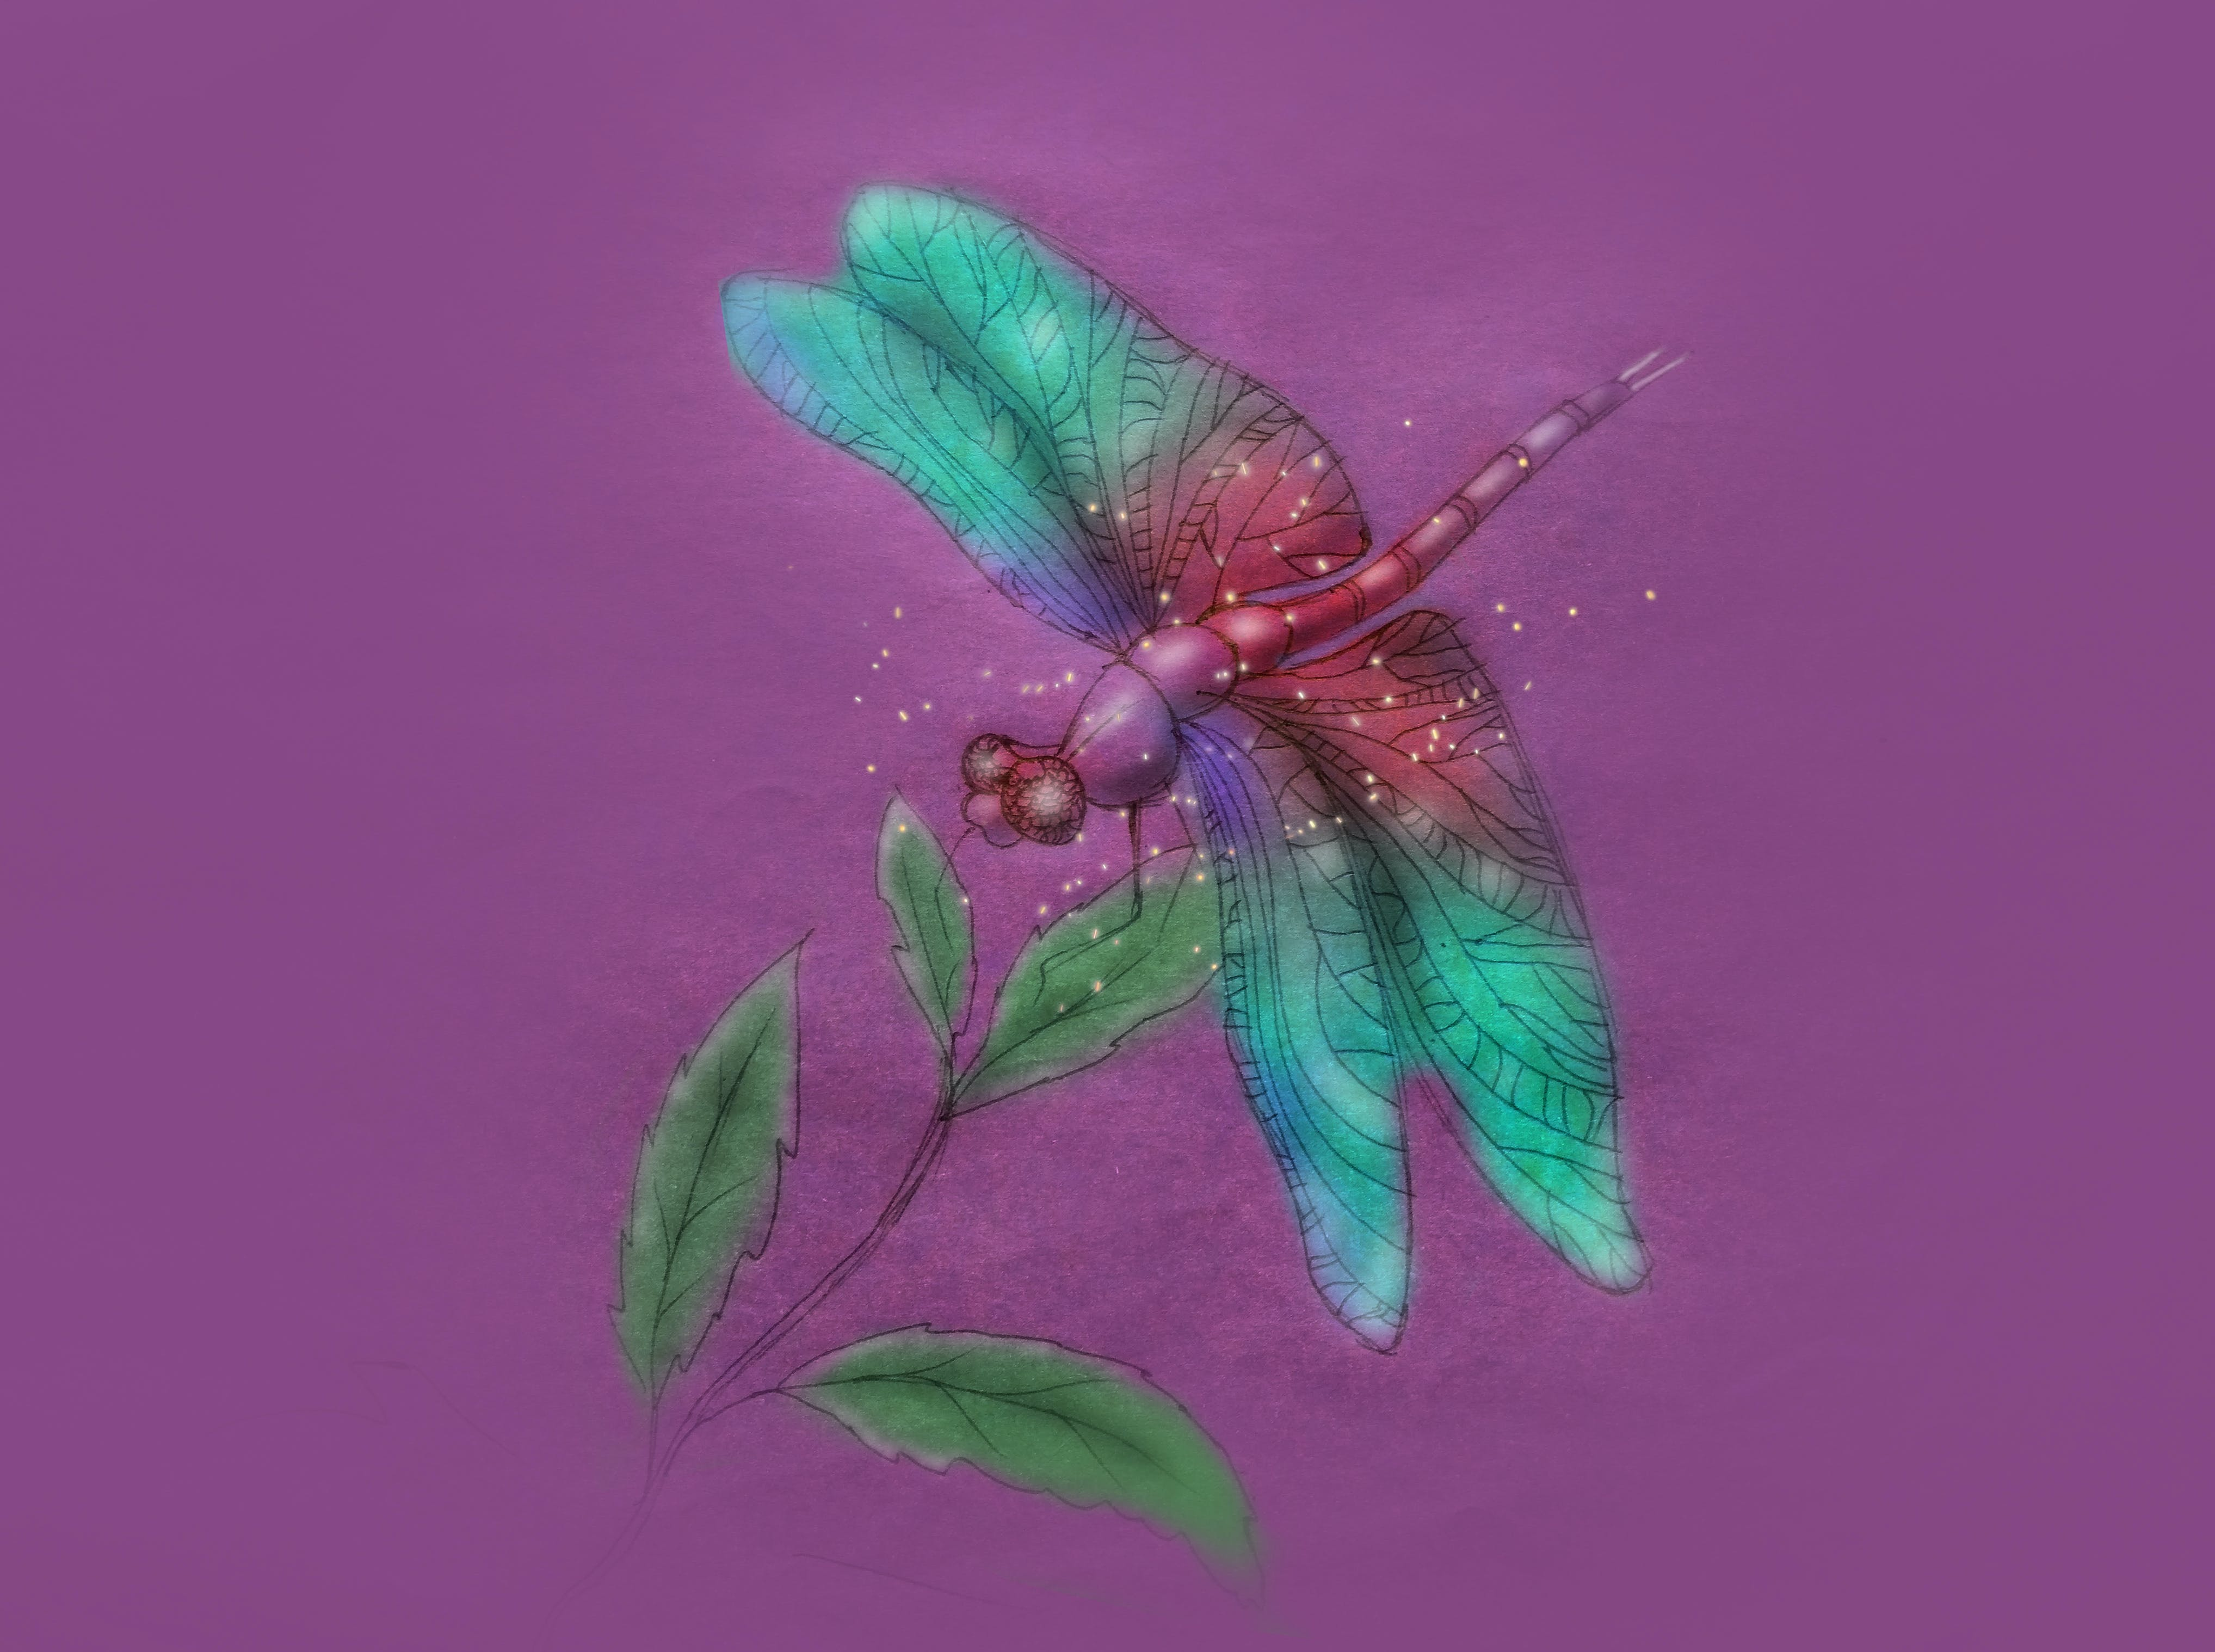 of dragonfly